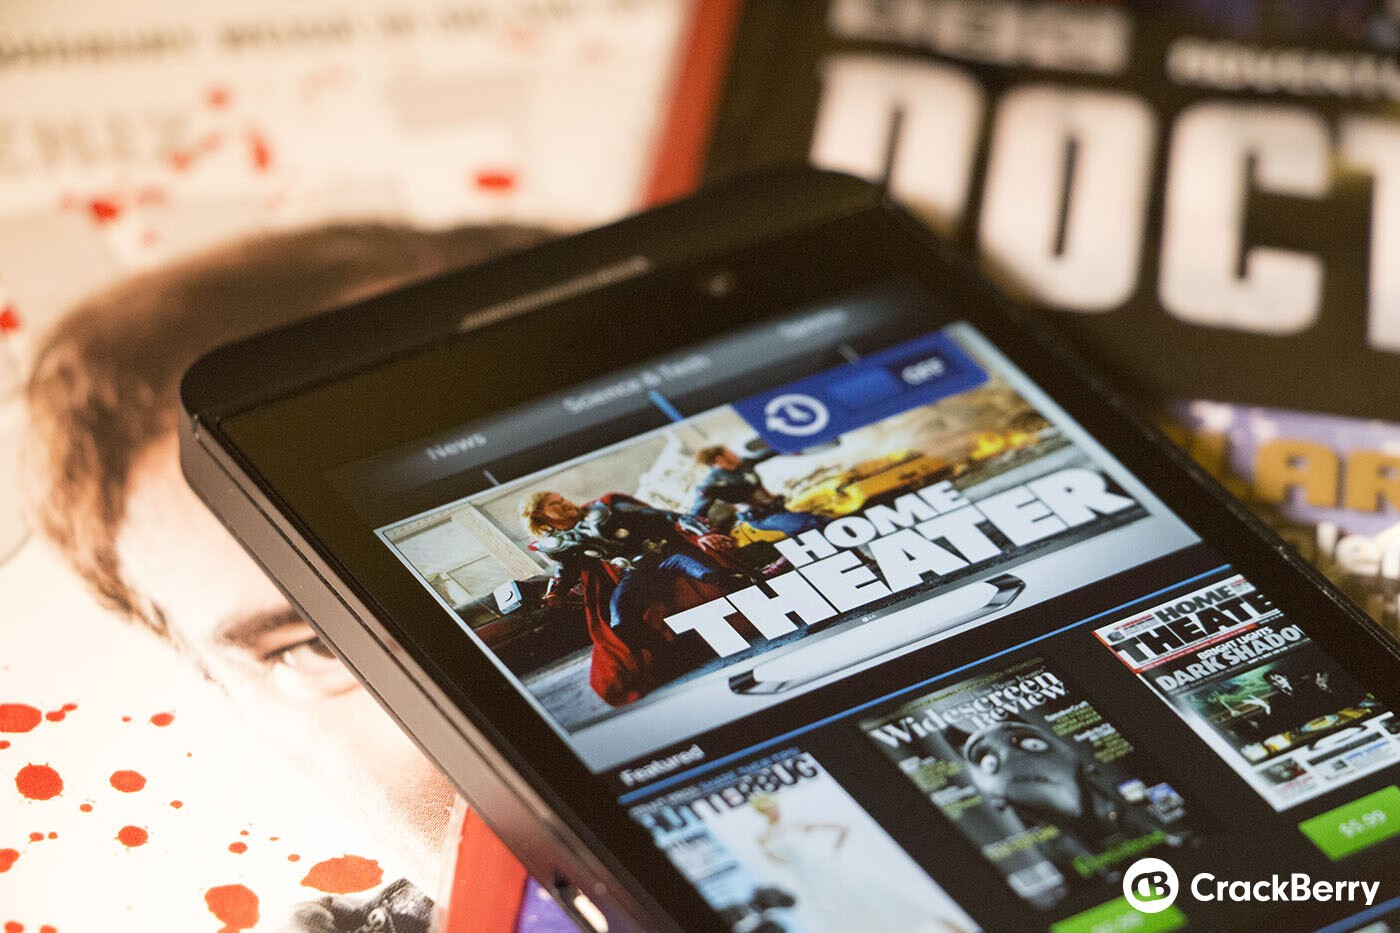 BlackBerry Newsstand gets bumped into v10.0.10.10